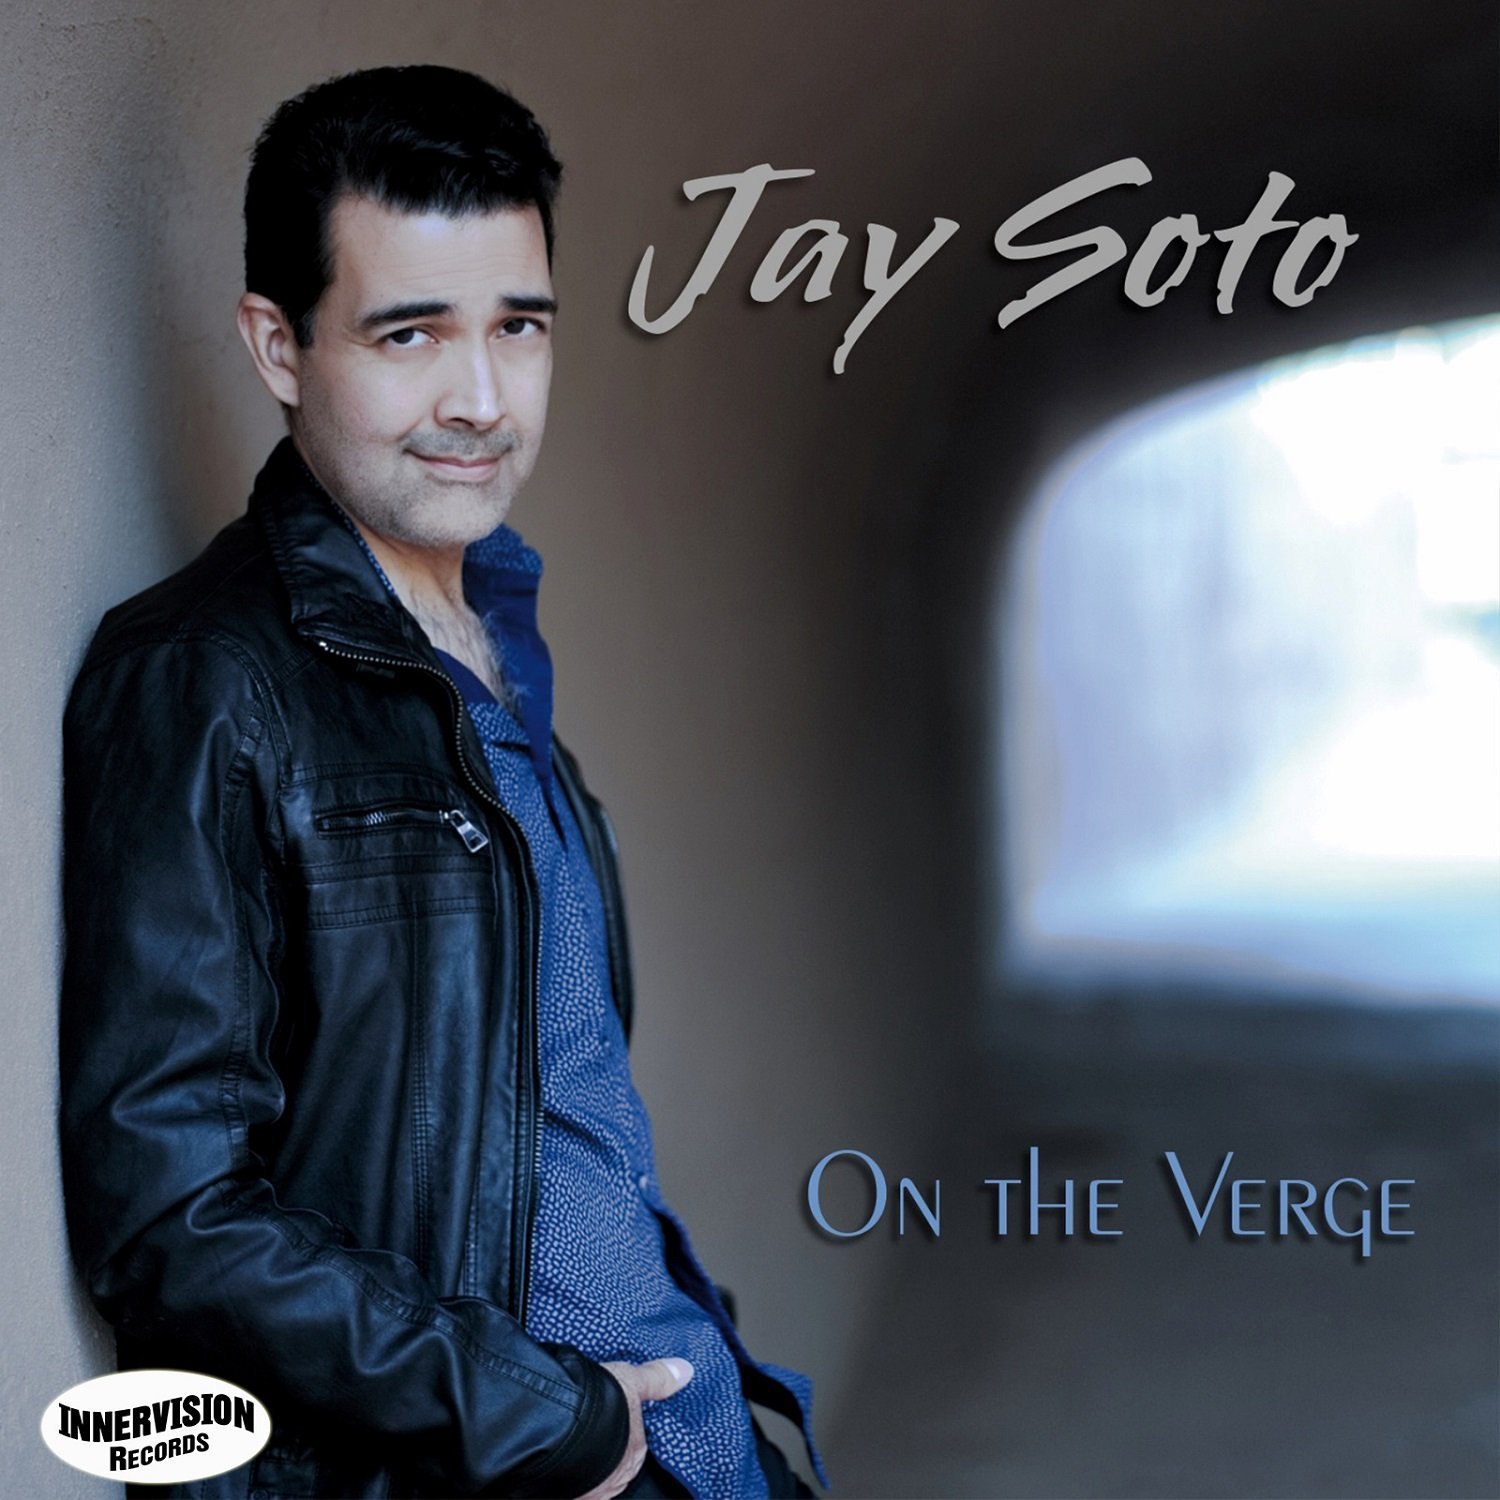 JAY SOTO - On the Verge cover